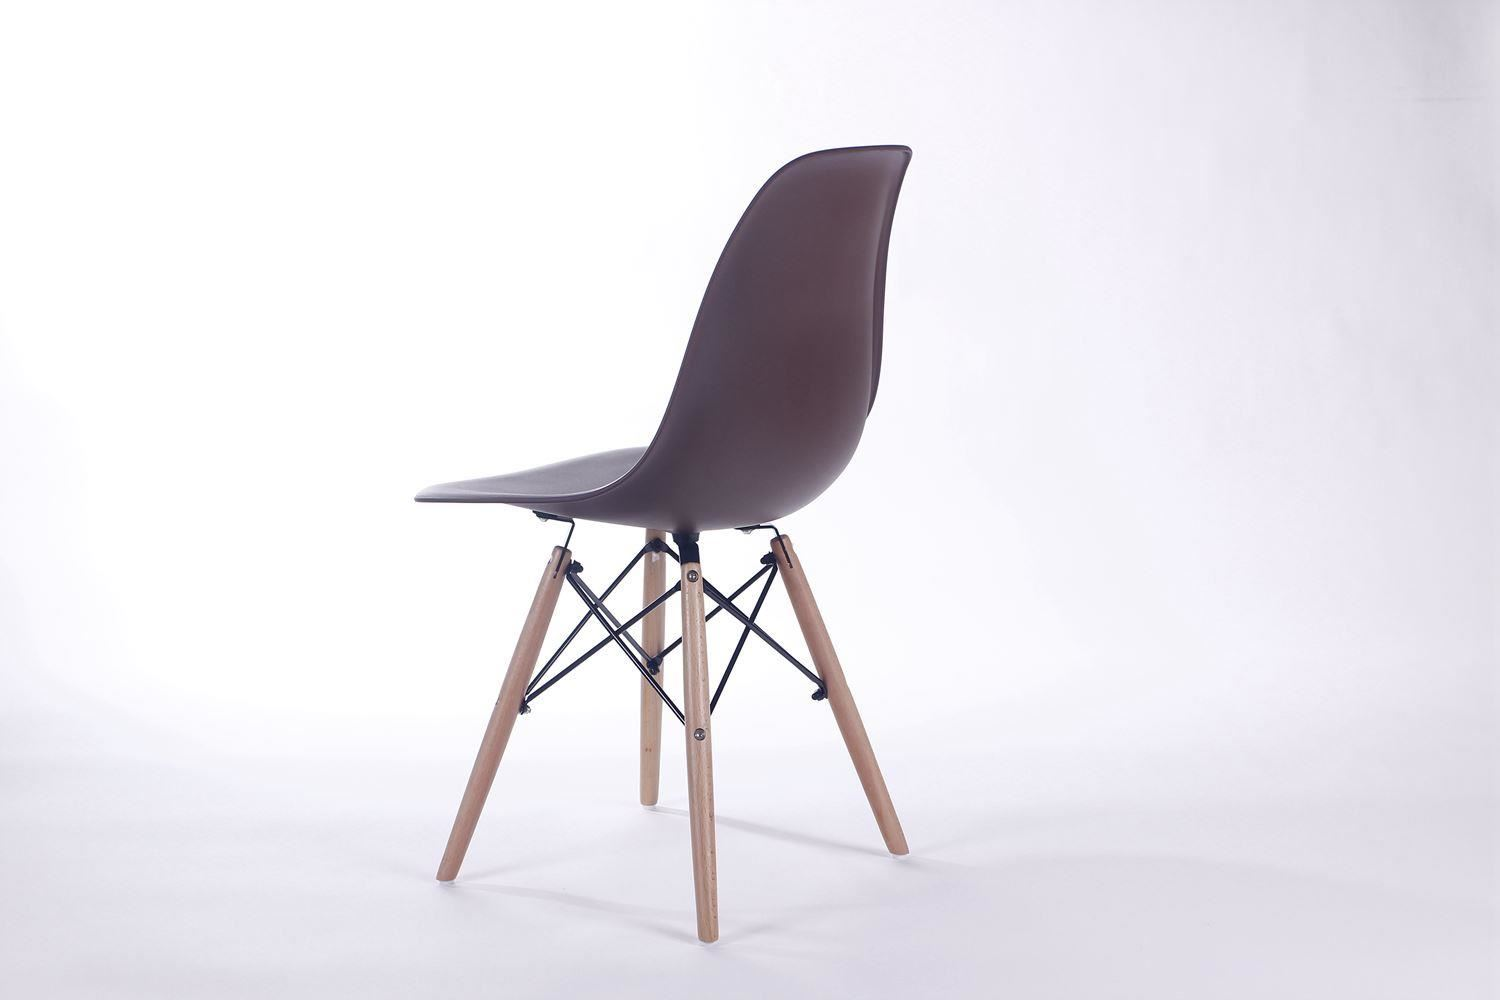 Charles Ray Eames Eiffel Inspired DSW Side Dining Chair  : e5e3d788 e394 4ccd a4ca e3092f4084db from www.ebay.co.uk size 1500 x 1000 jpeg 53kB